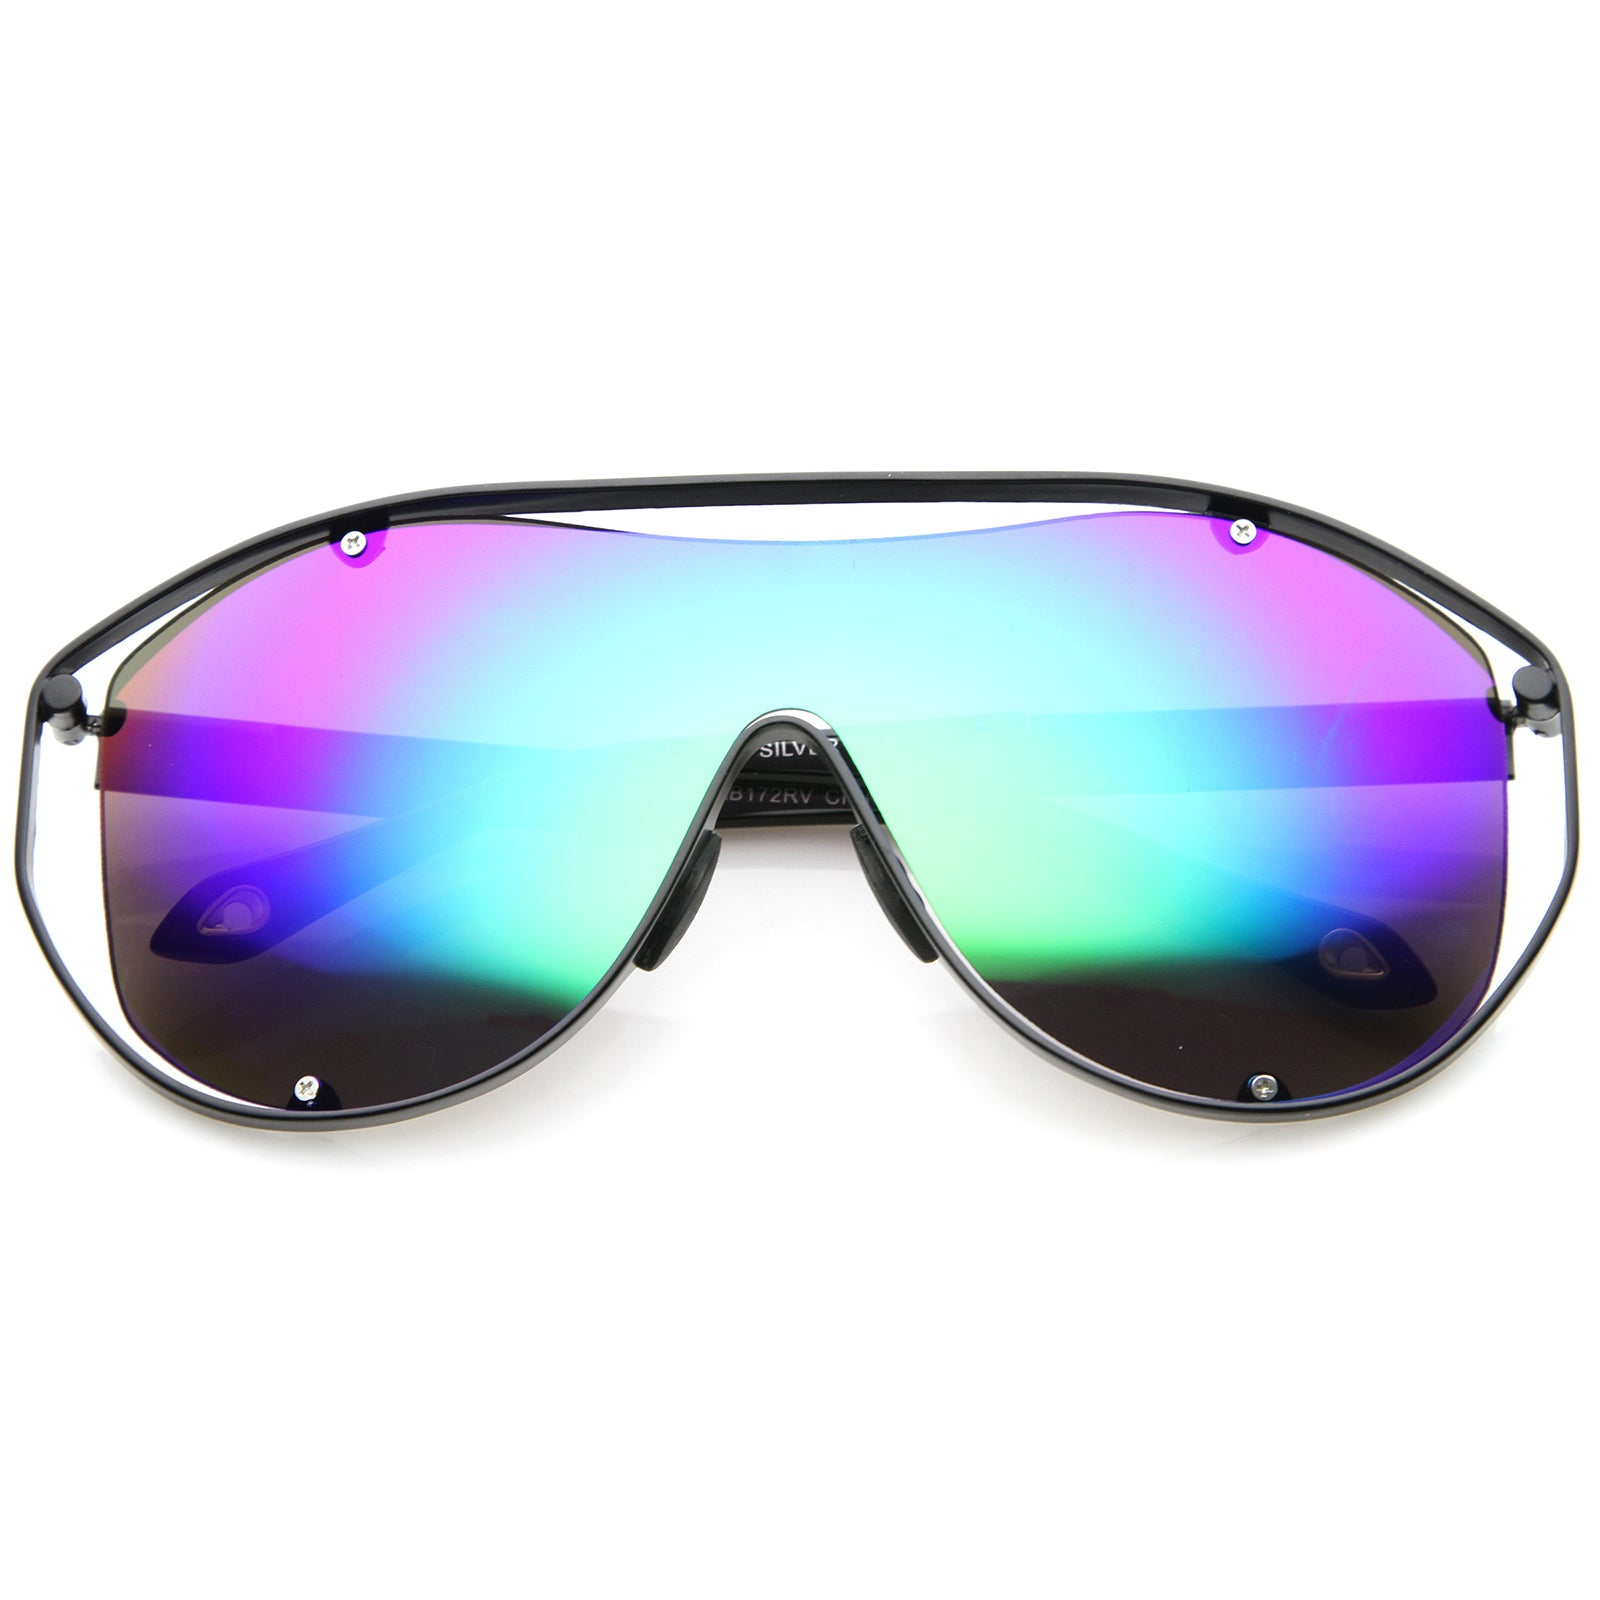 Modern Fashion Metal Frame Inner Rimless Mirror Lens Shield Sunglasses - sunglass.la - 1